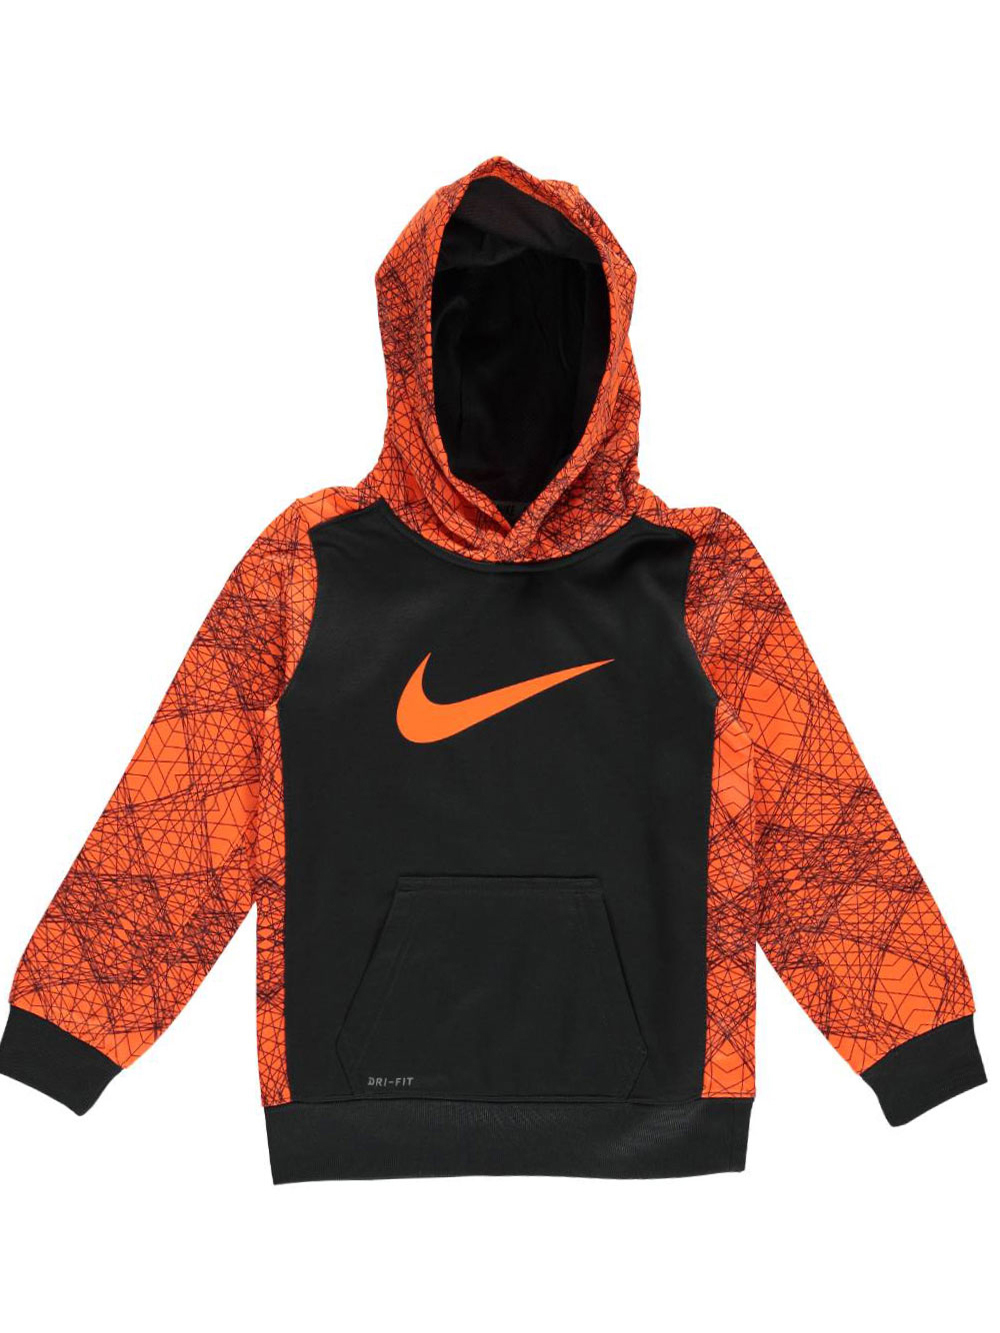 Image of Nike Little Boys Therma DriFit Hoodie Sizes 4  7